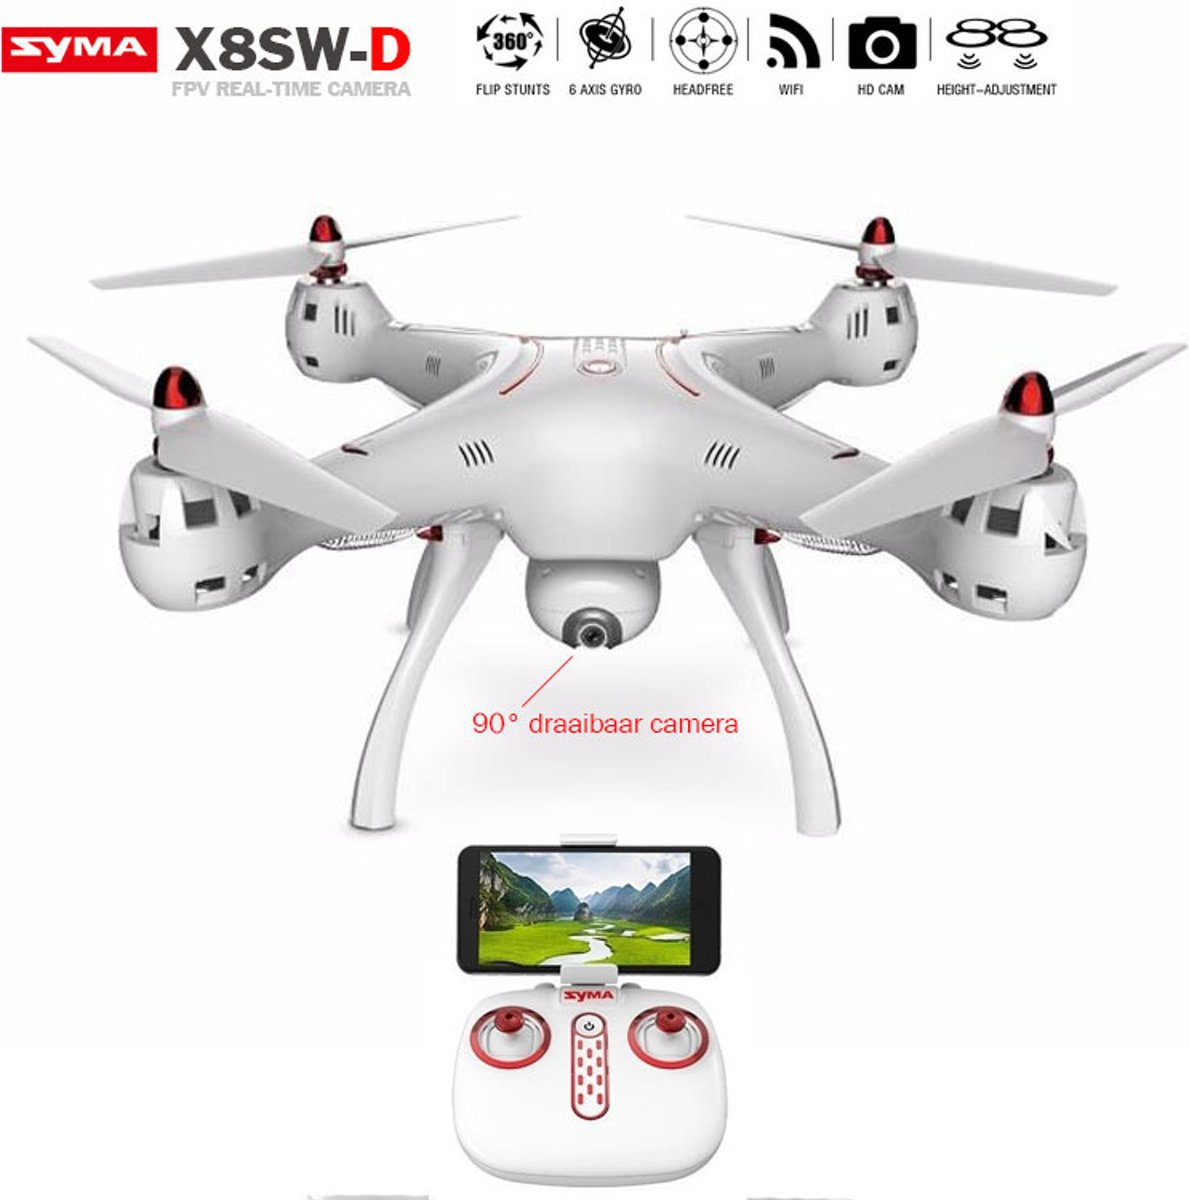 SYMA X8SW-D Quadcopter - HD Live Draaibaar Camera beelden -FPV  DRONE - 2.4GHZ